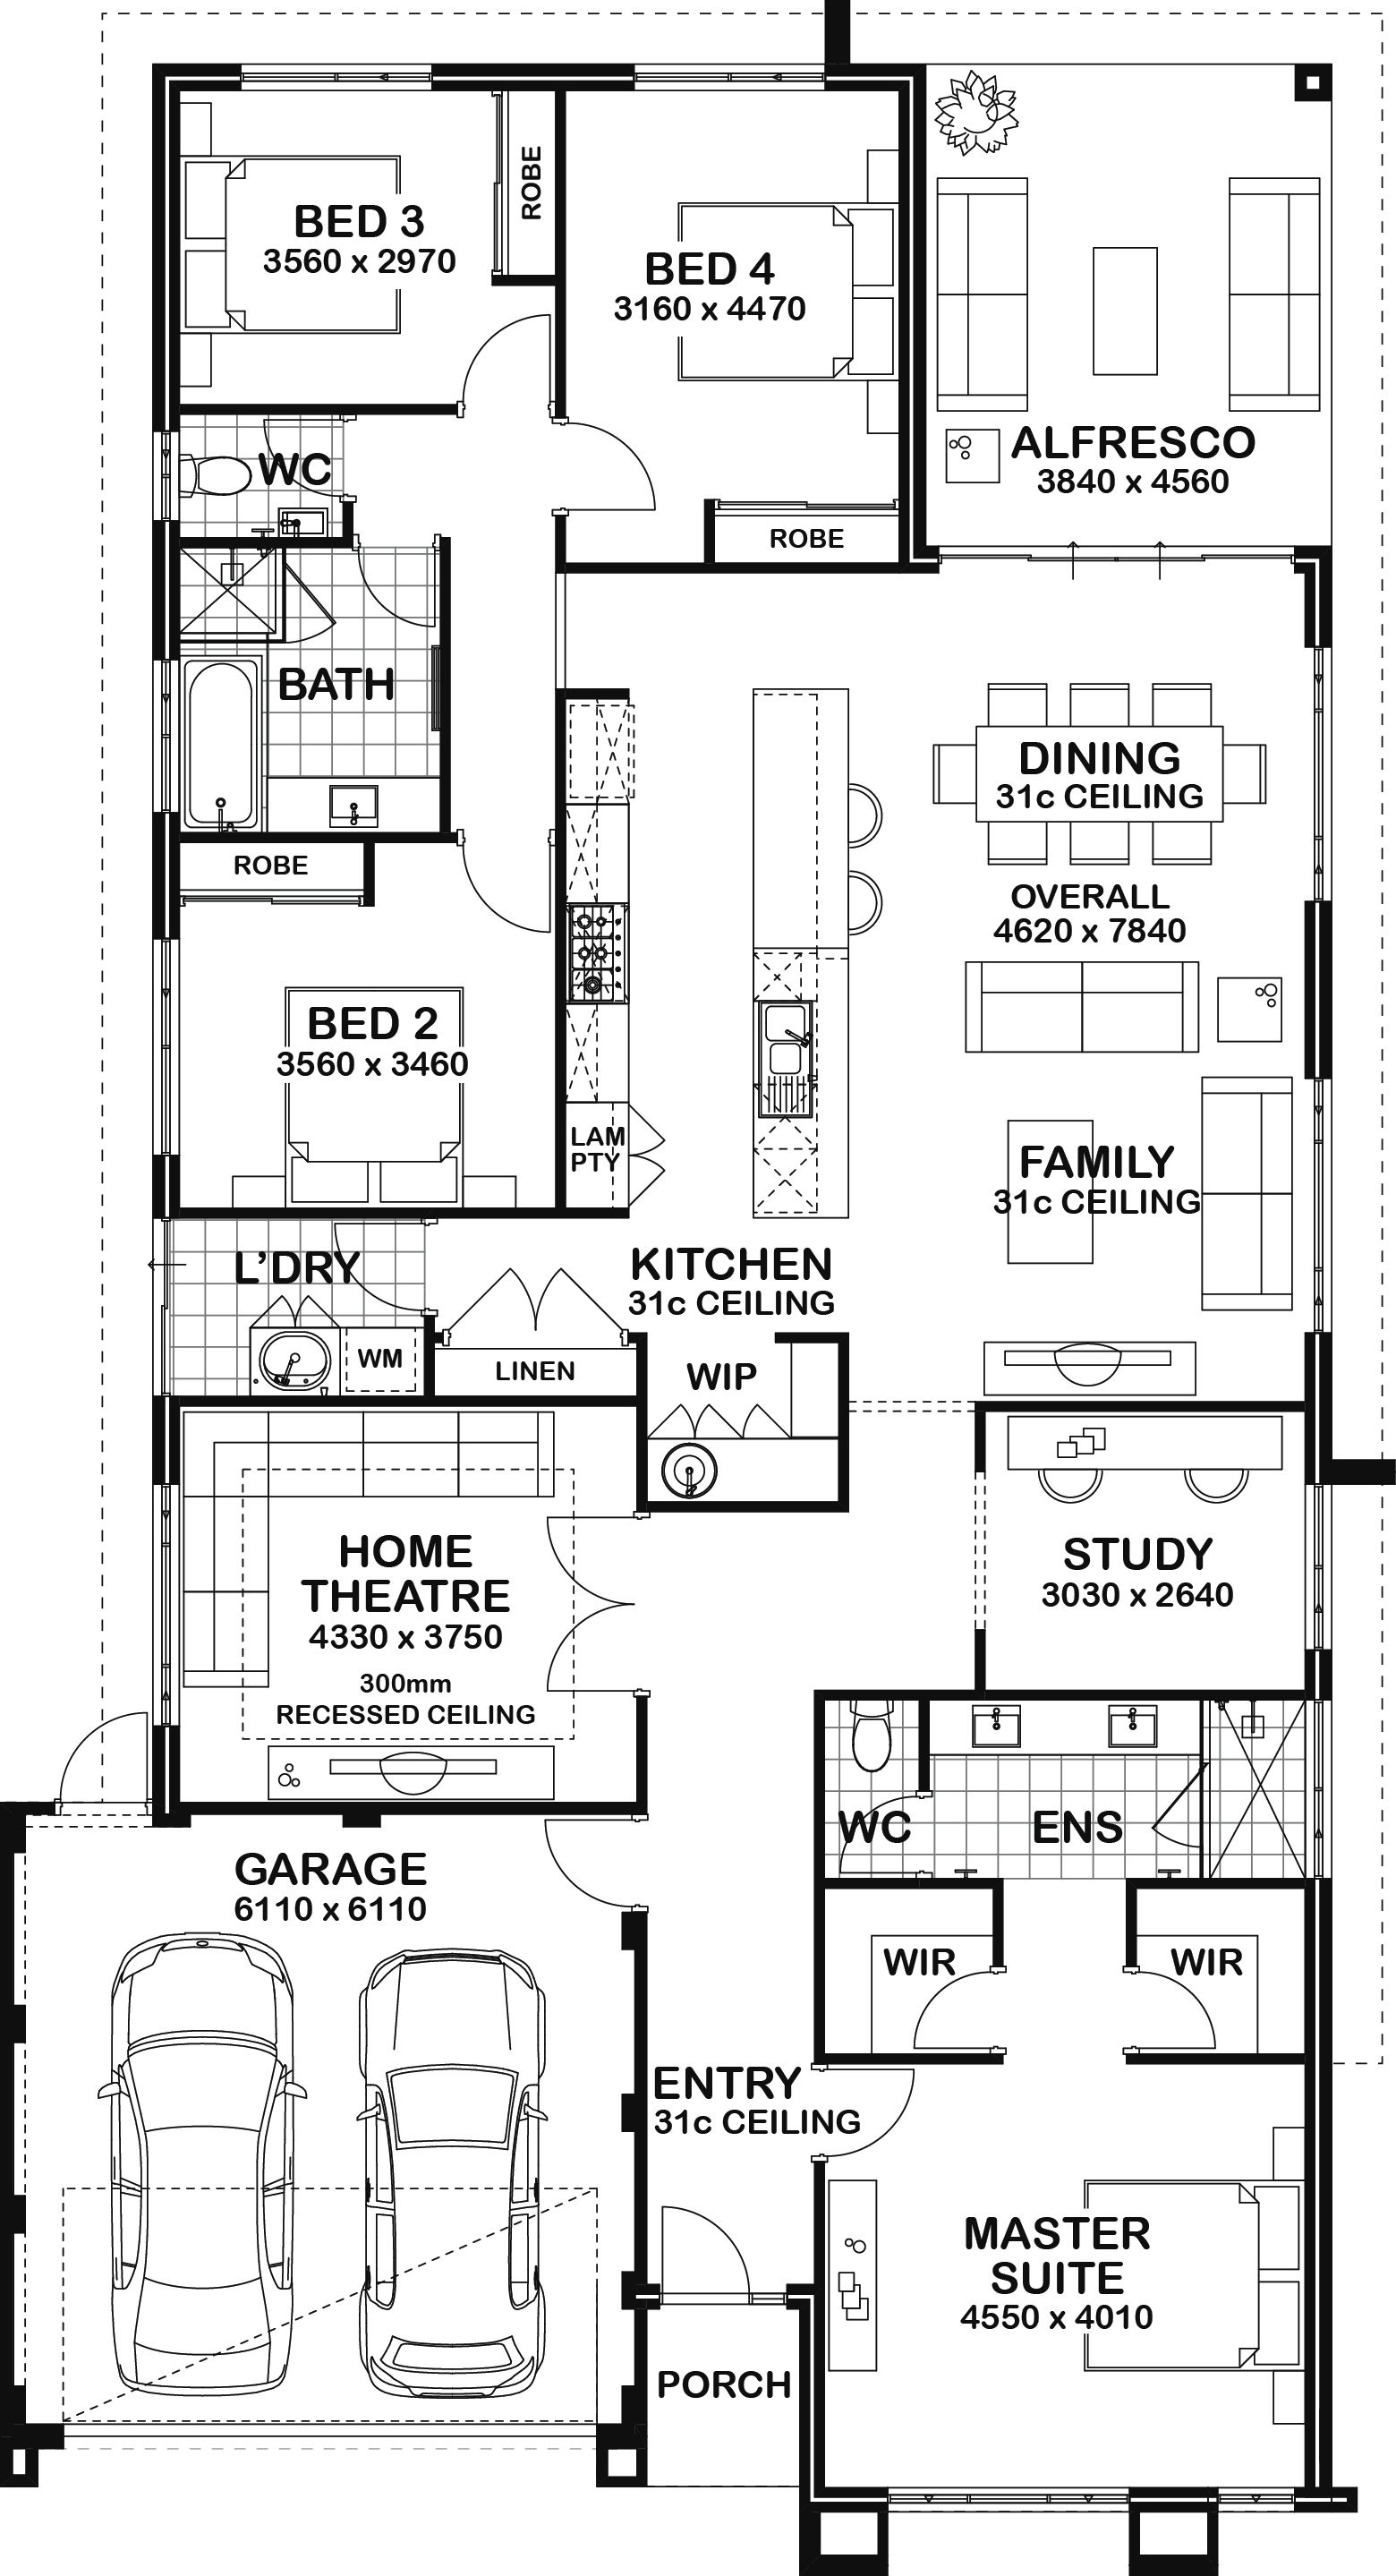 Display Homes in Perth Home design floor plans, House